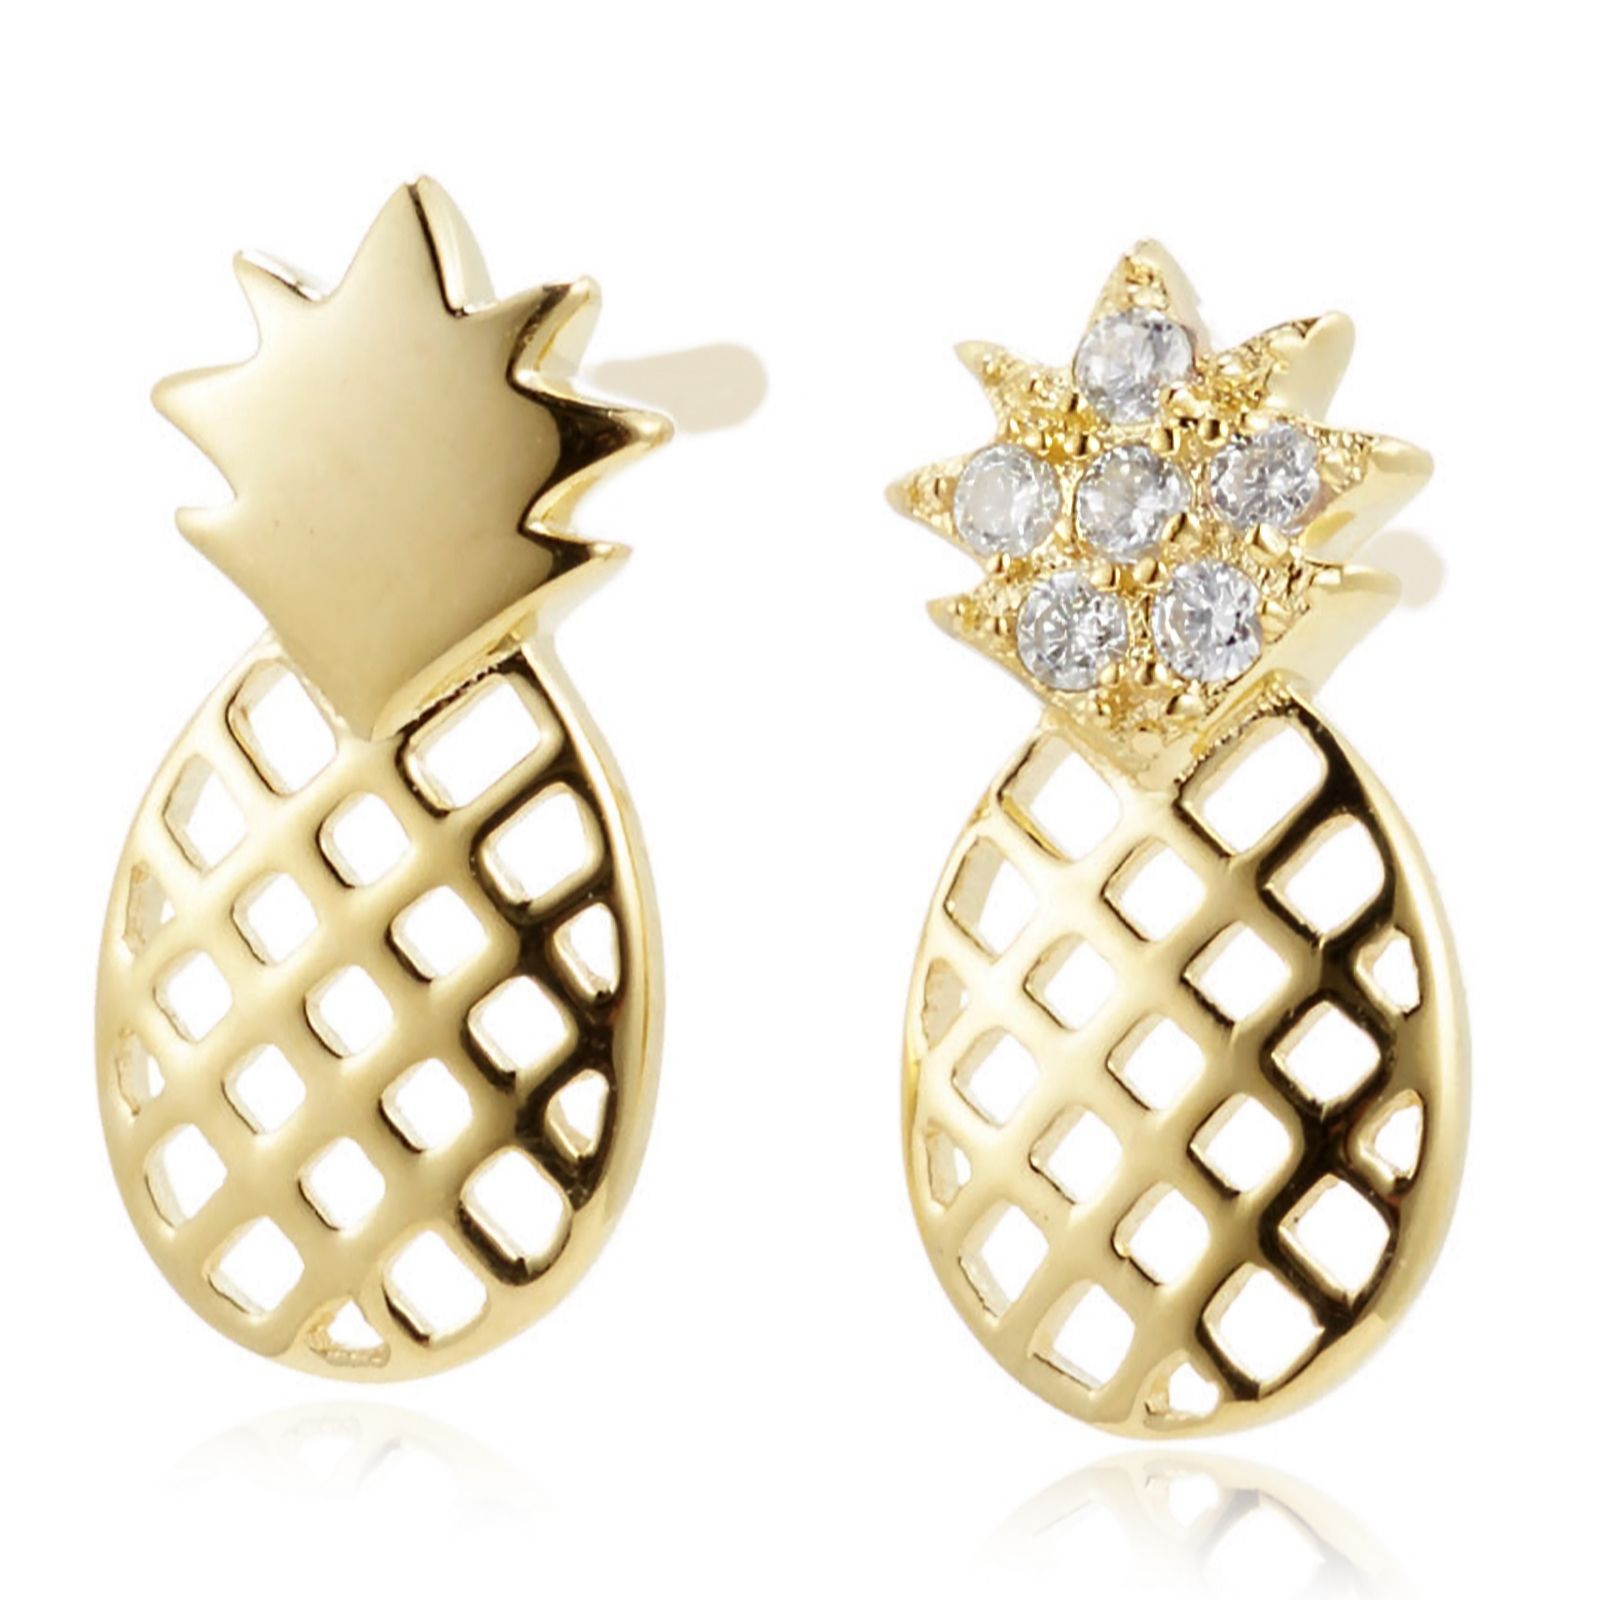 do cl e francesca pineapple alternate clalternate pave earring s stud pav product yllw